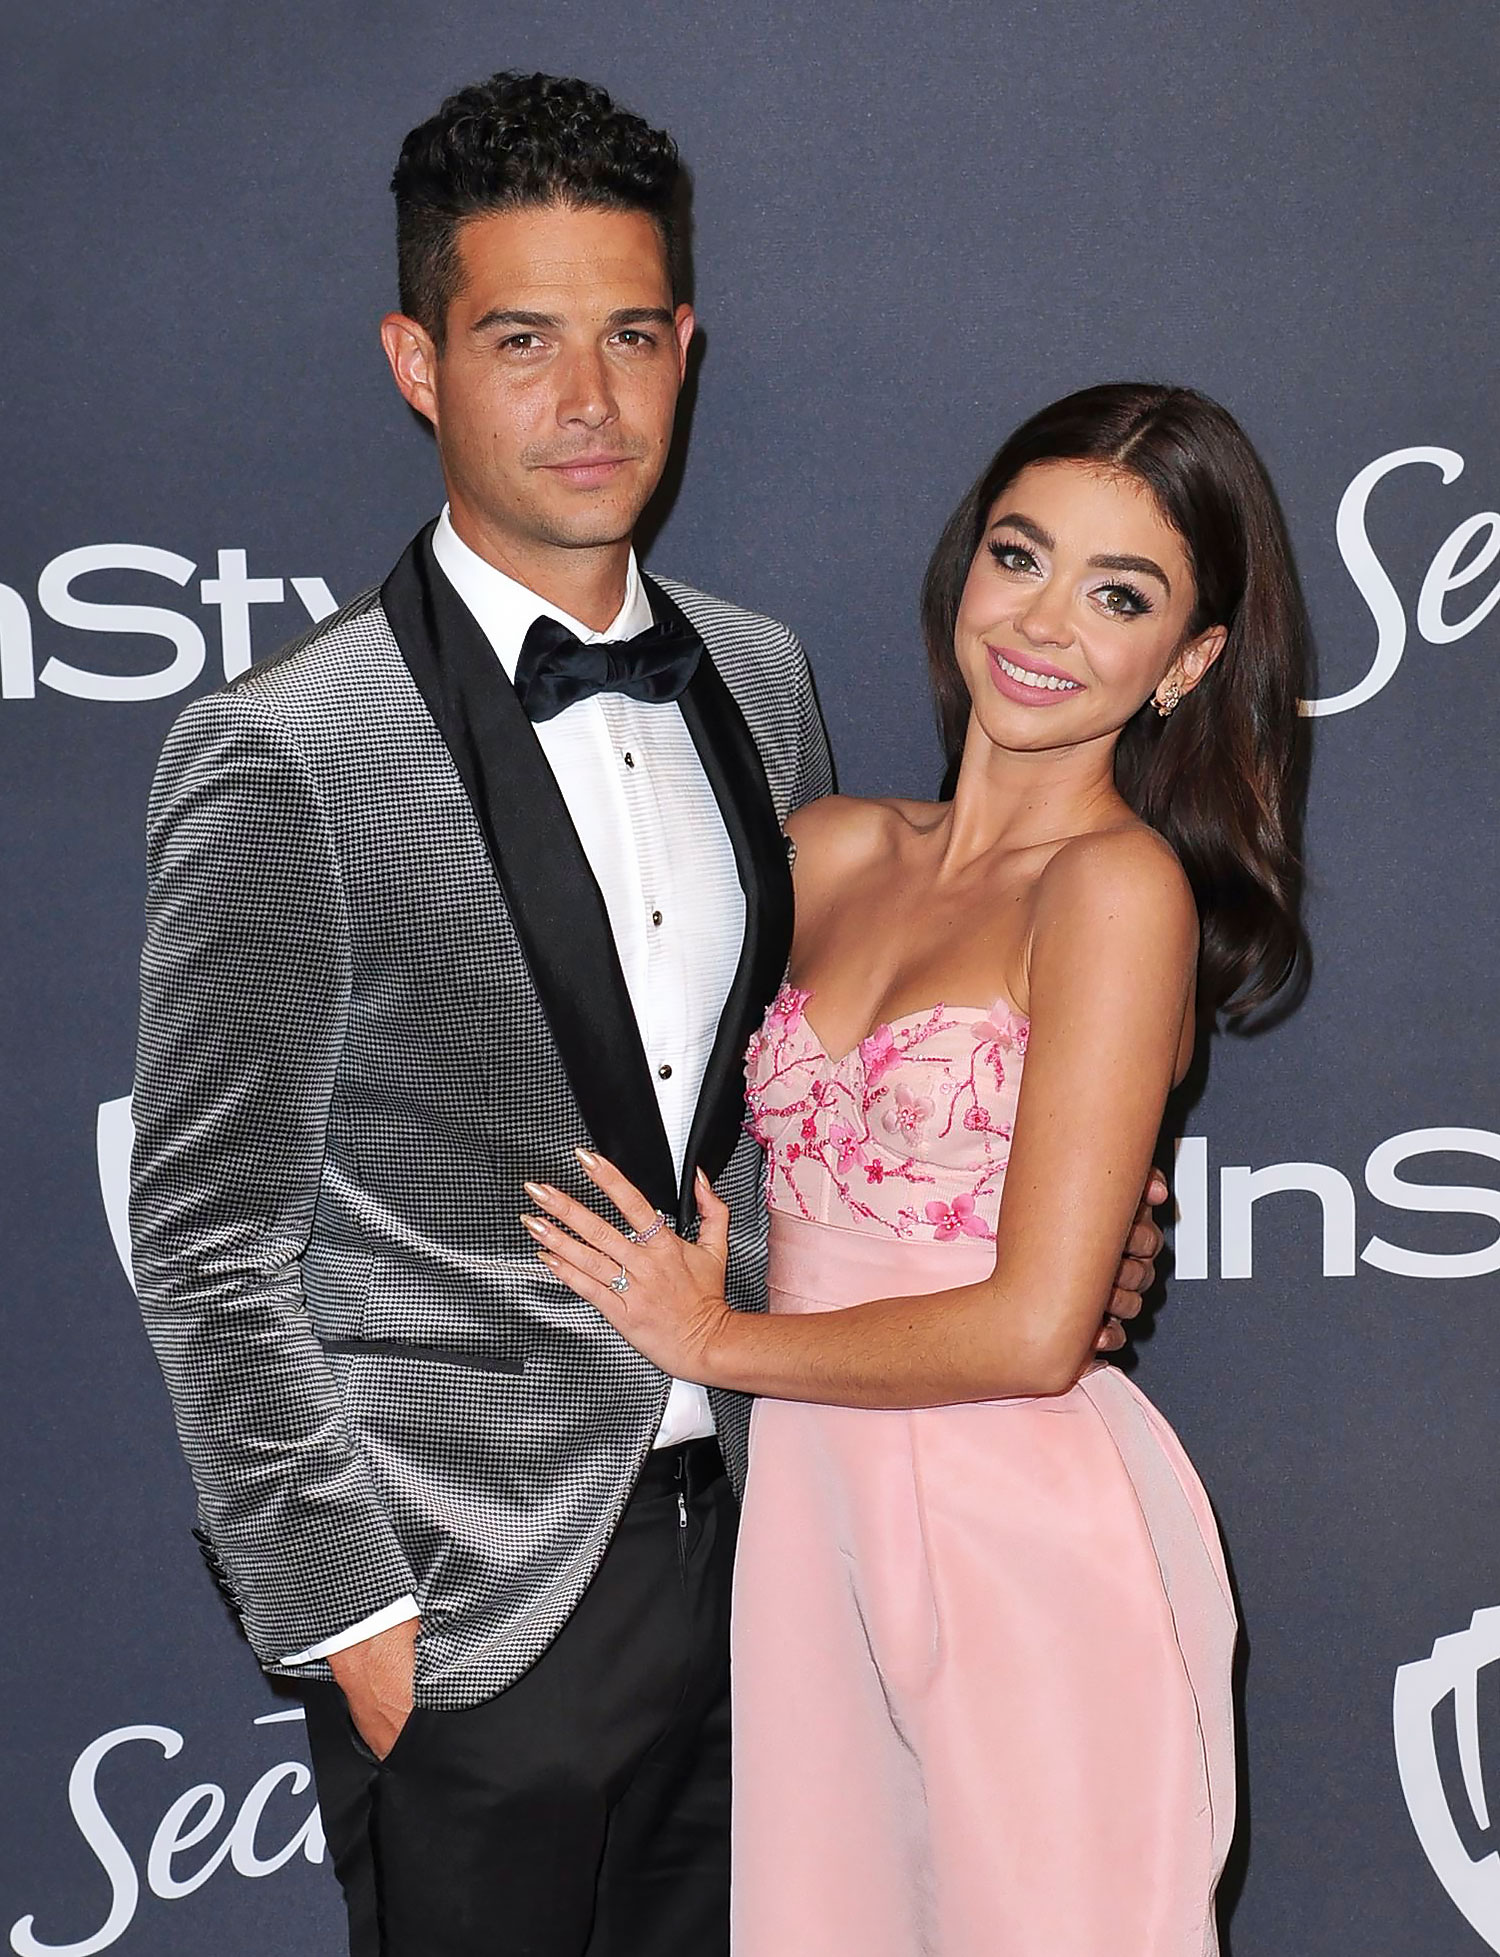 Sarah Hyland Confirms She and Wells Adams Put Their Wedding Plans 'on Hold' Amid Pandemic